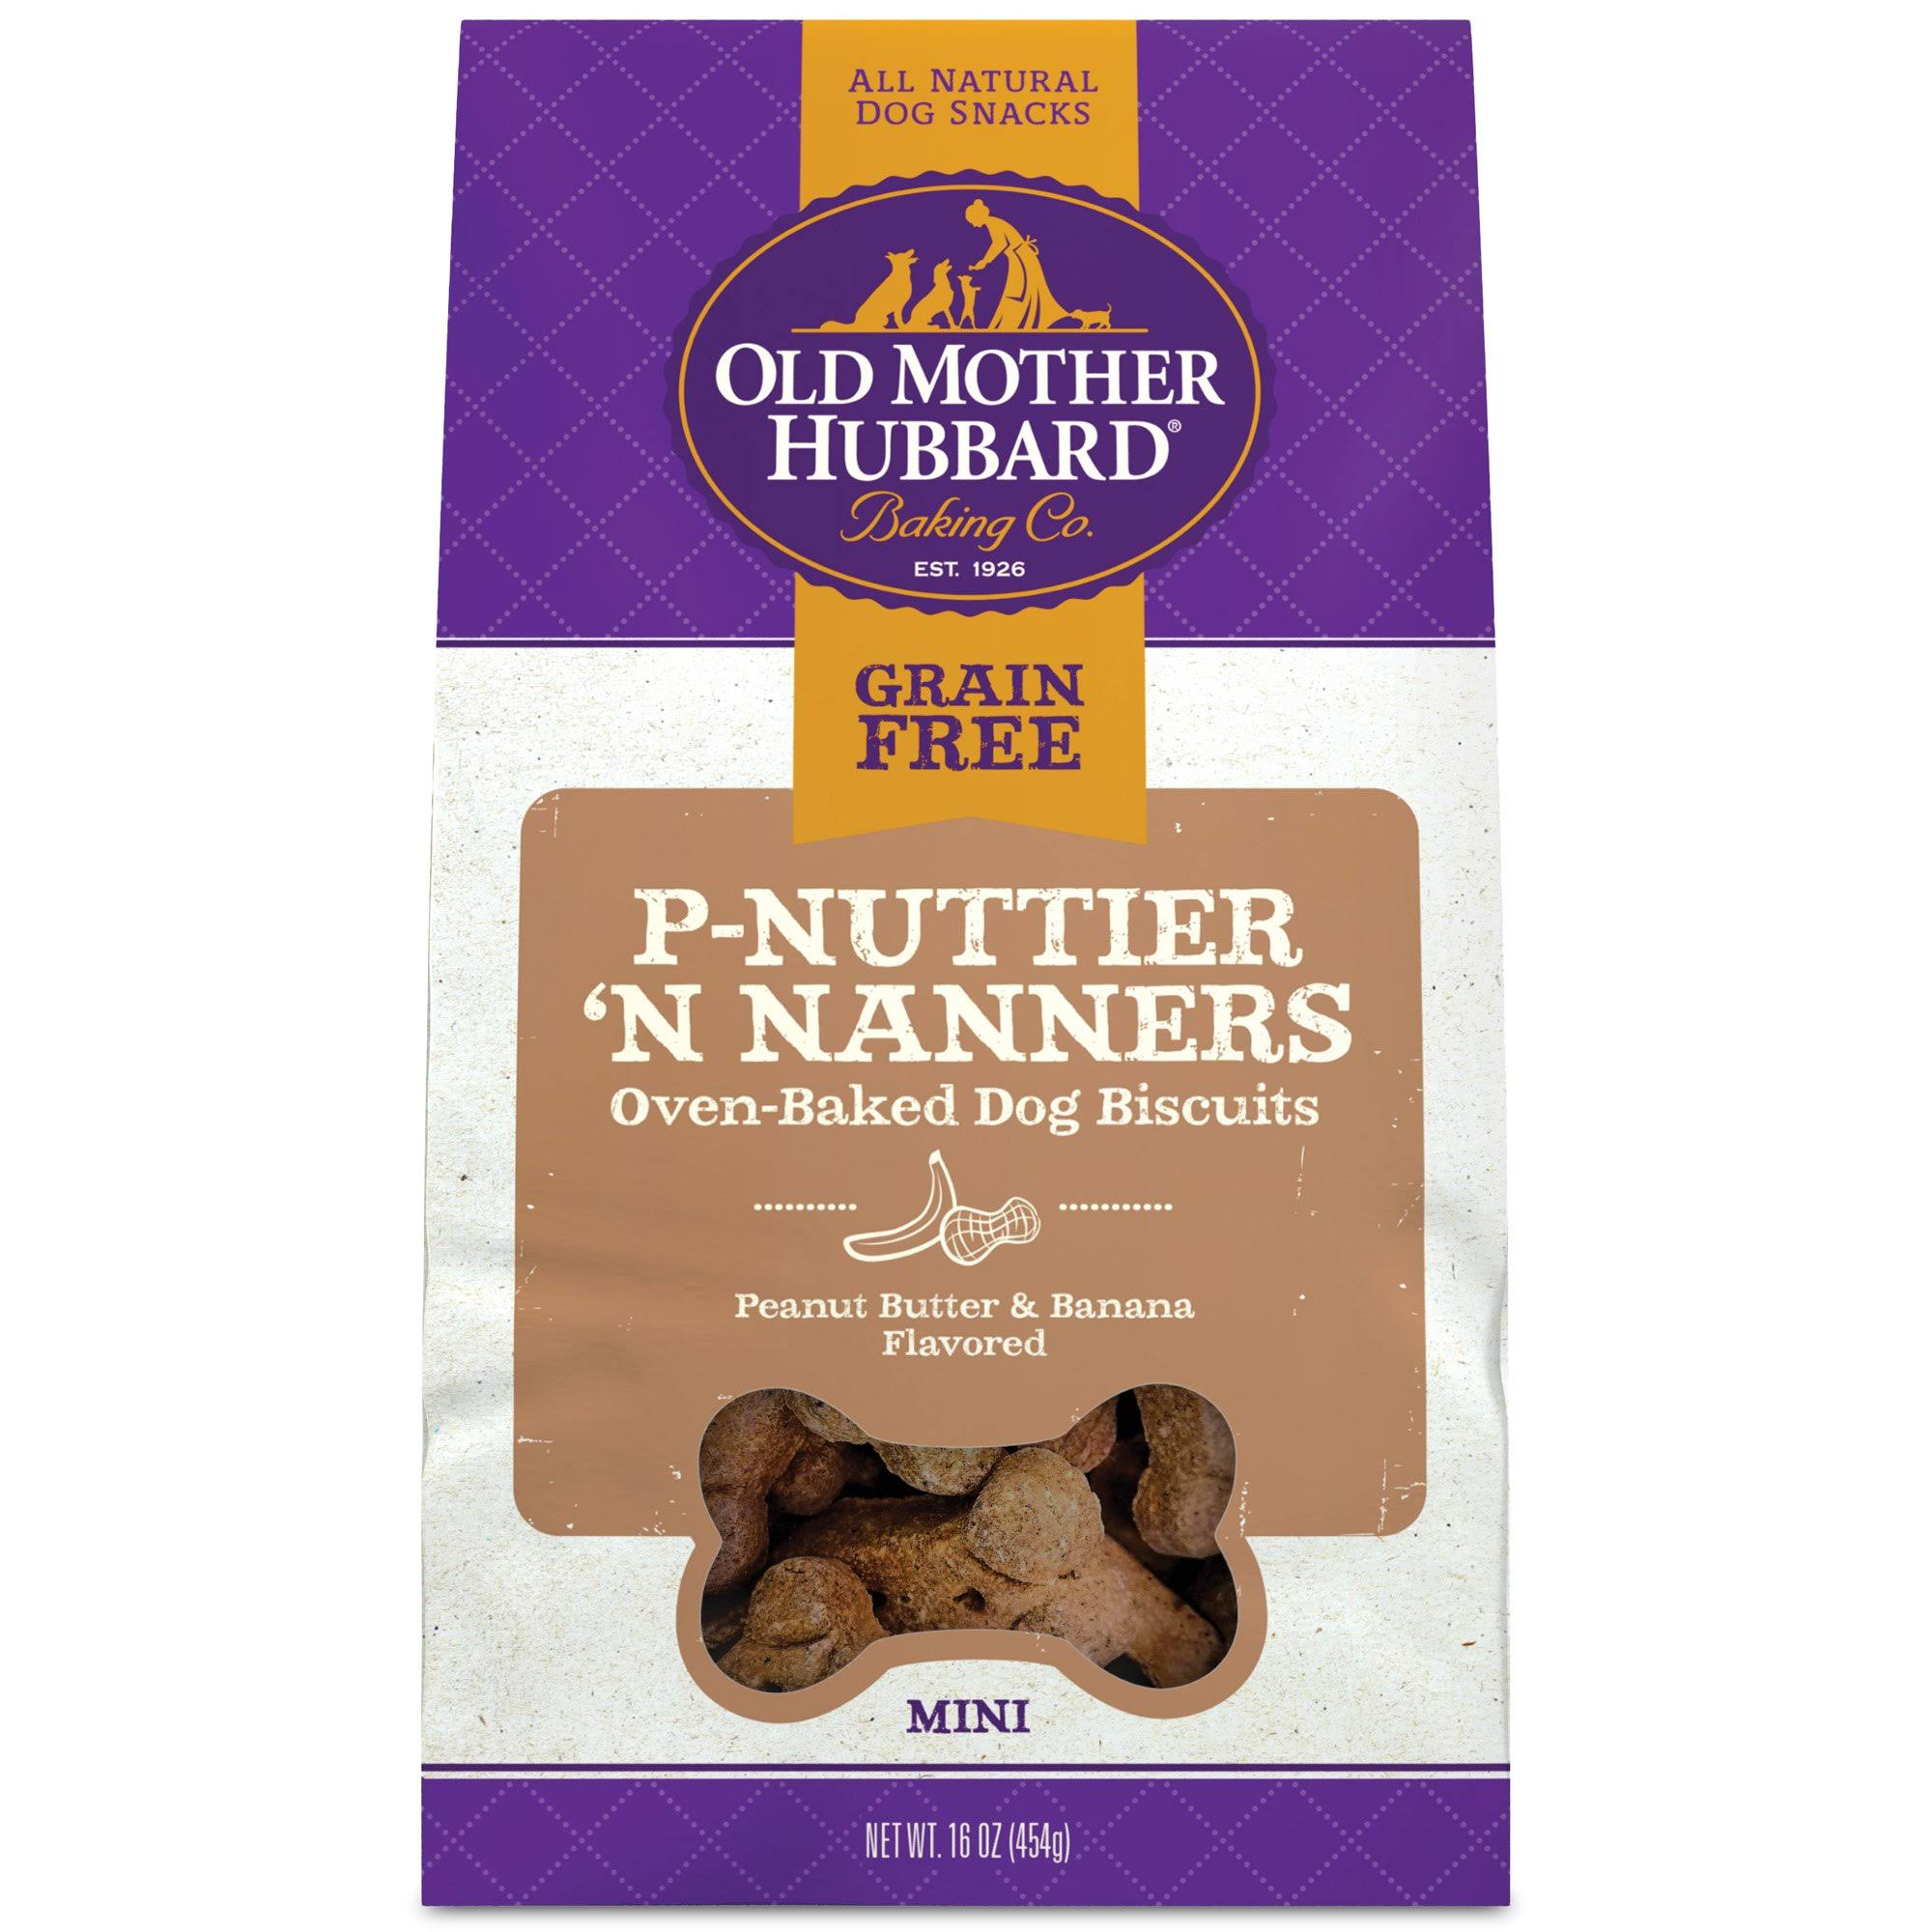 Old Mother Hubbard Grain Free P-Nuttier 'n' Nanners 16 oz Dog Treats